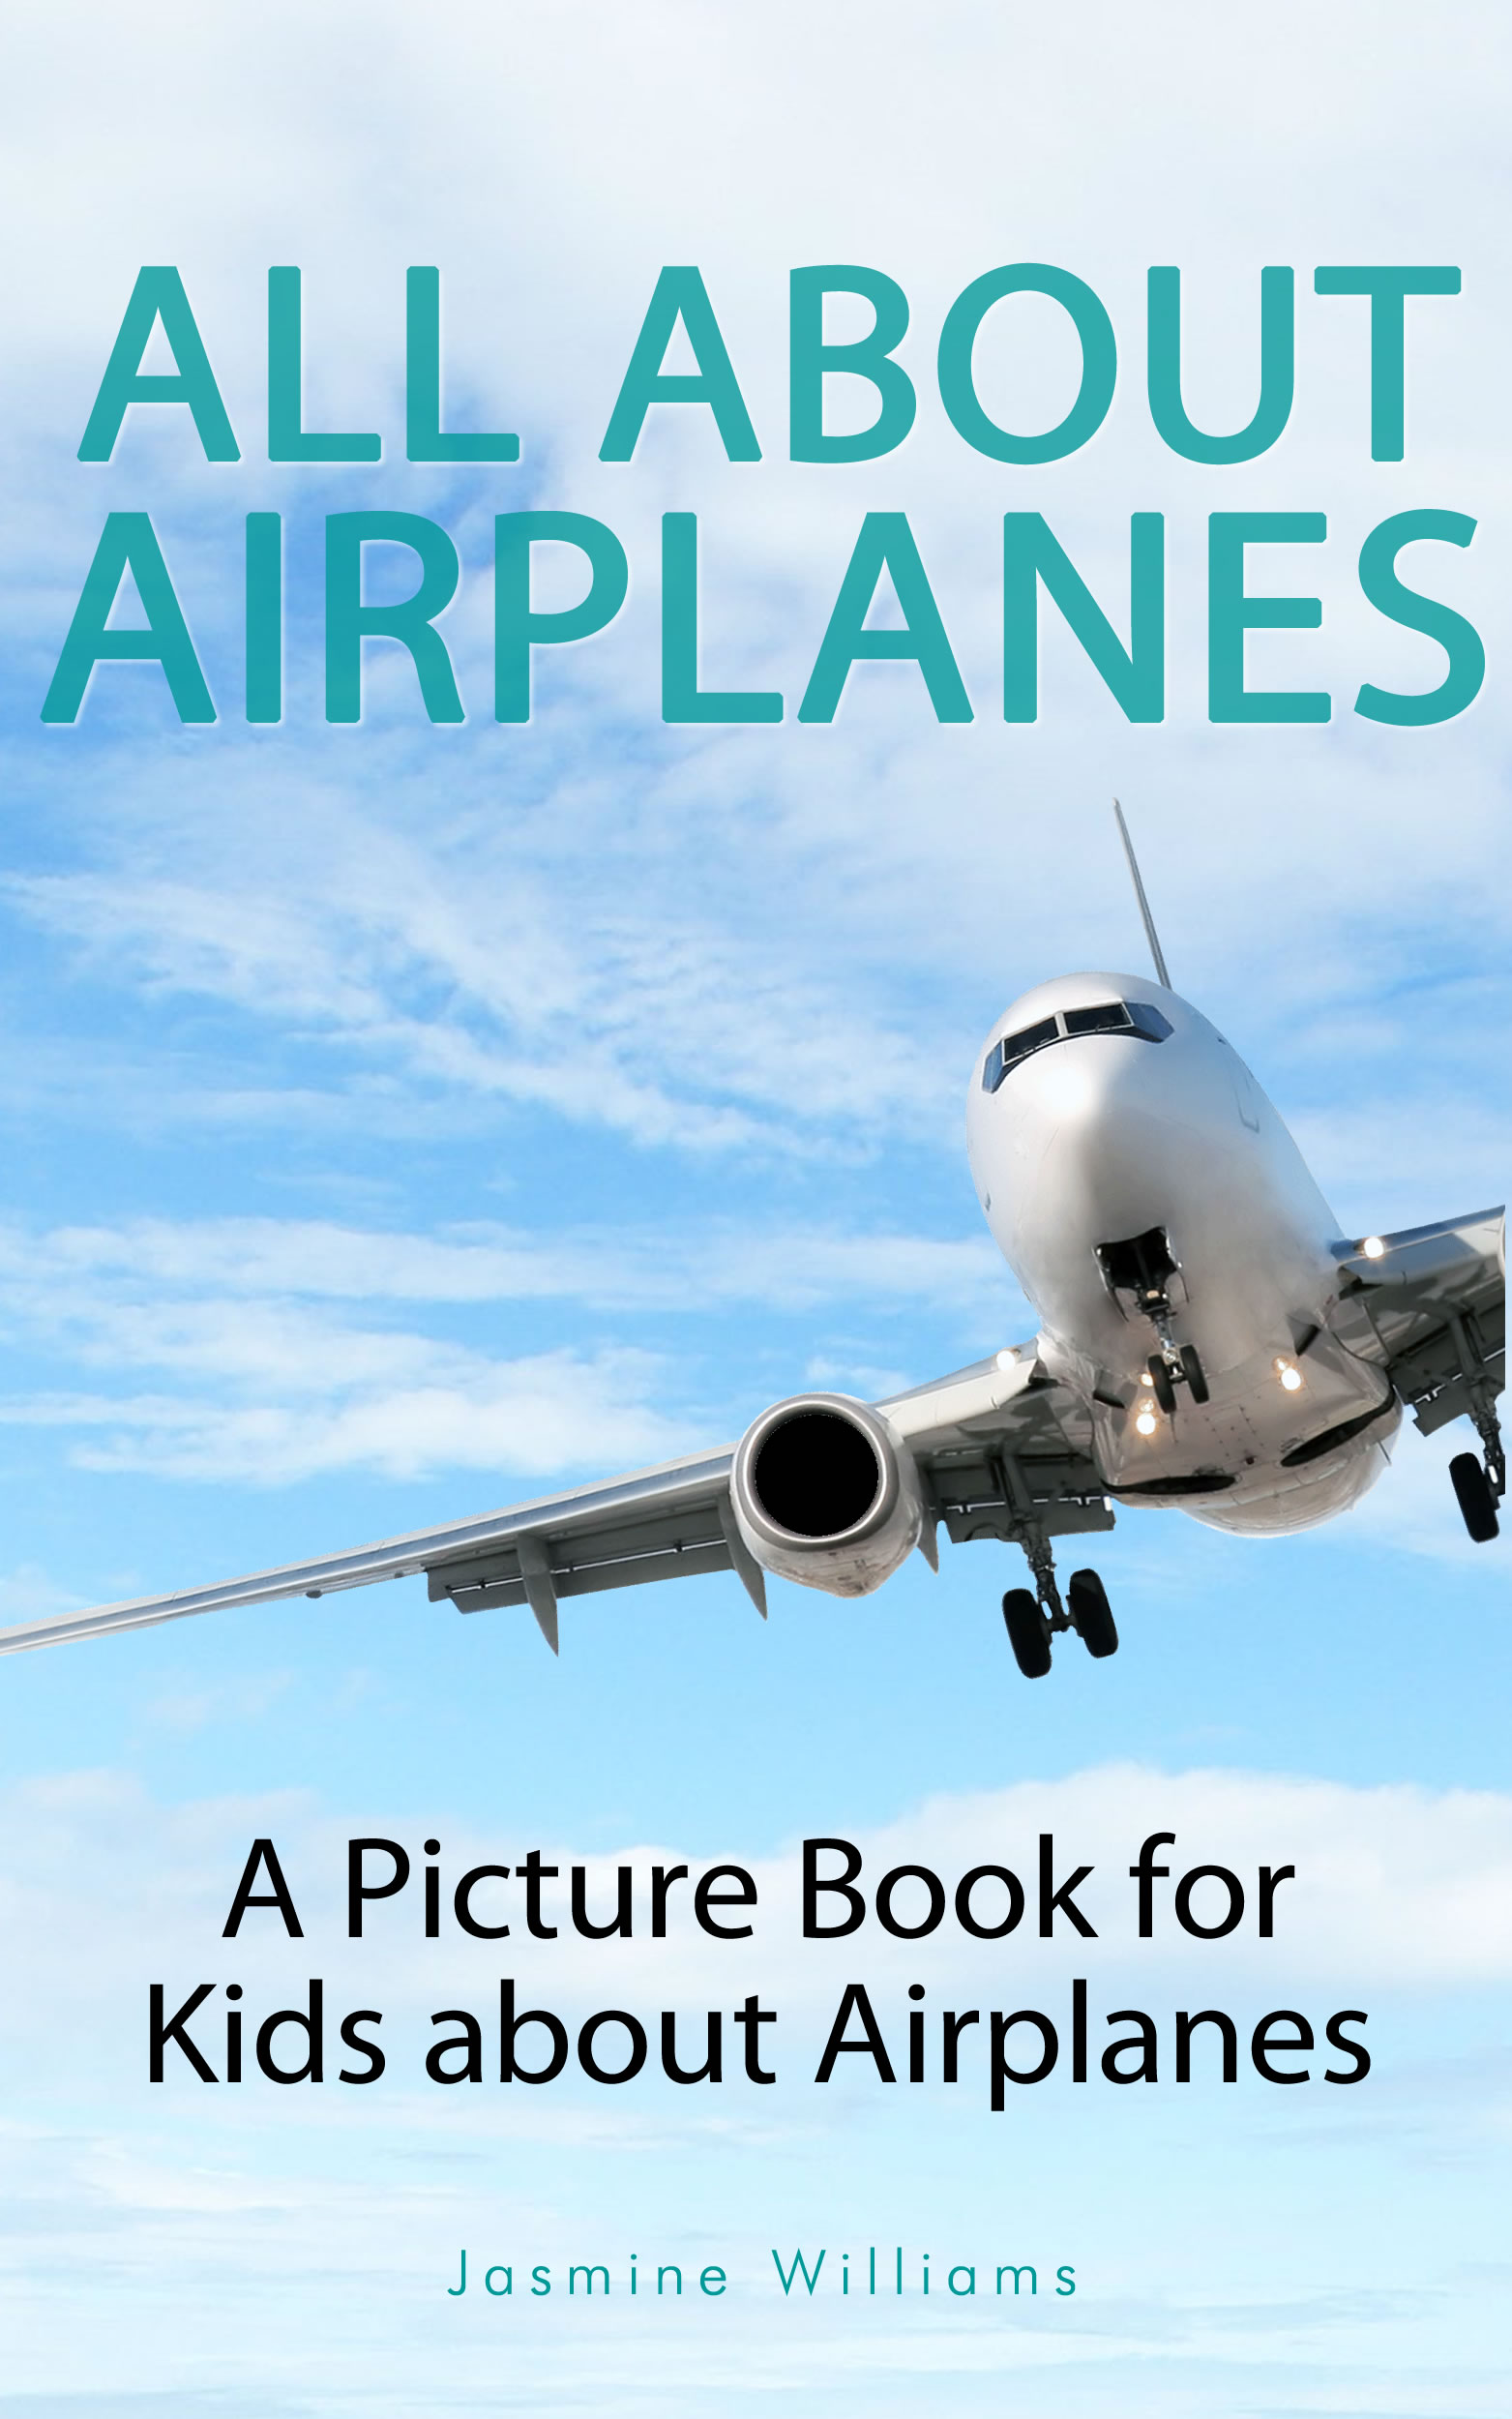 Children's Book About Airplanes